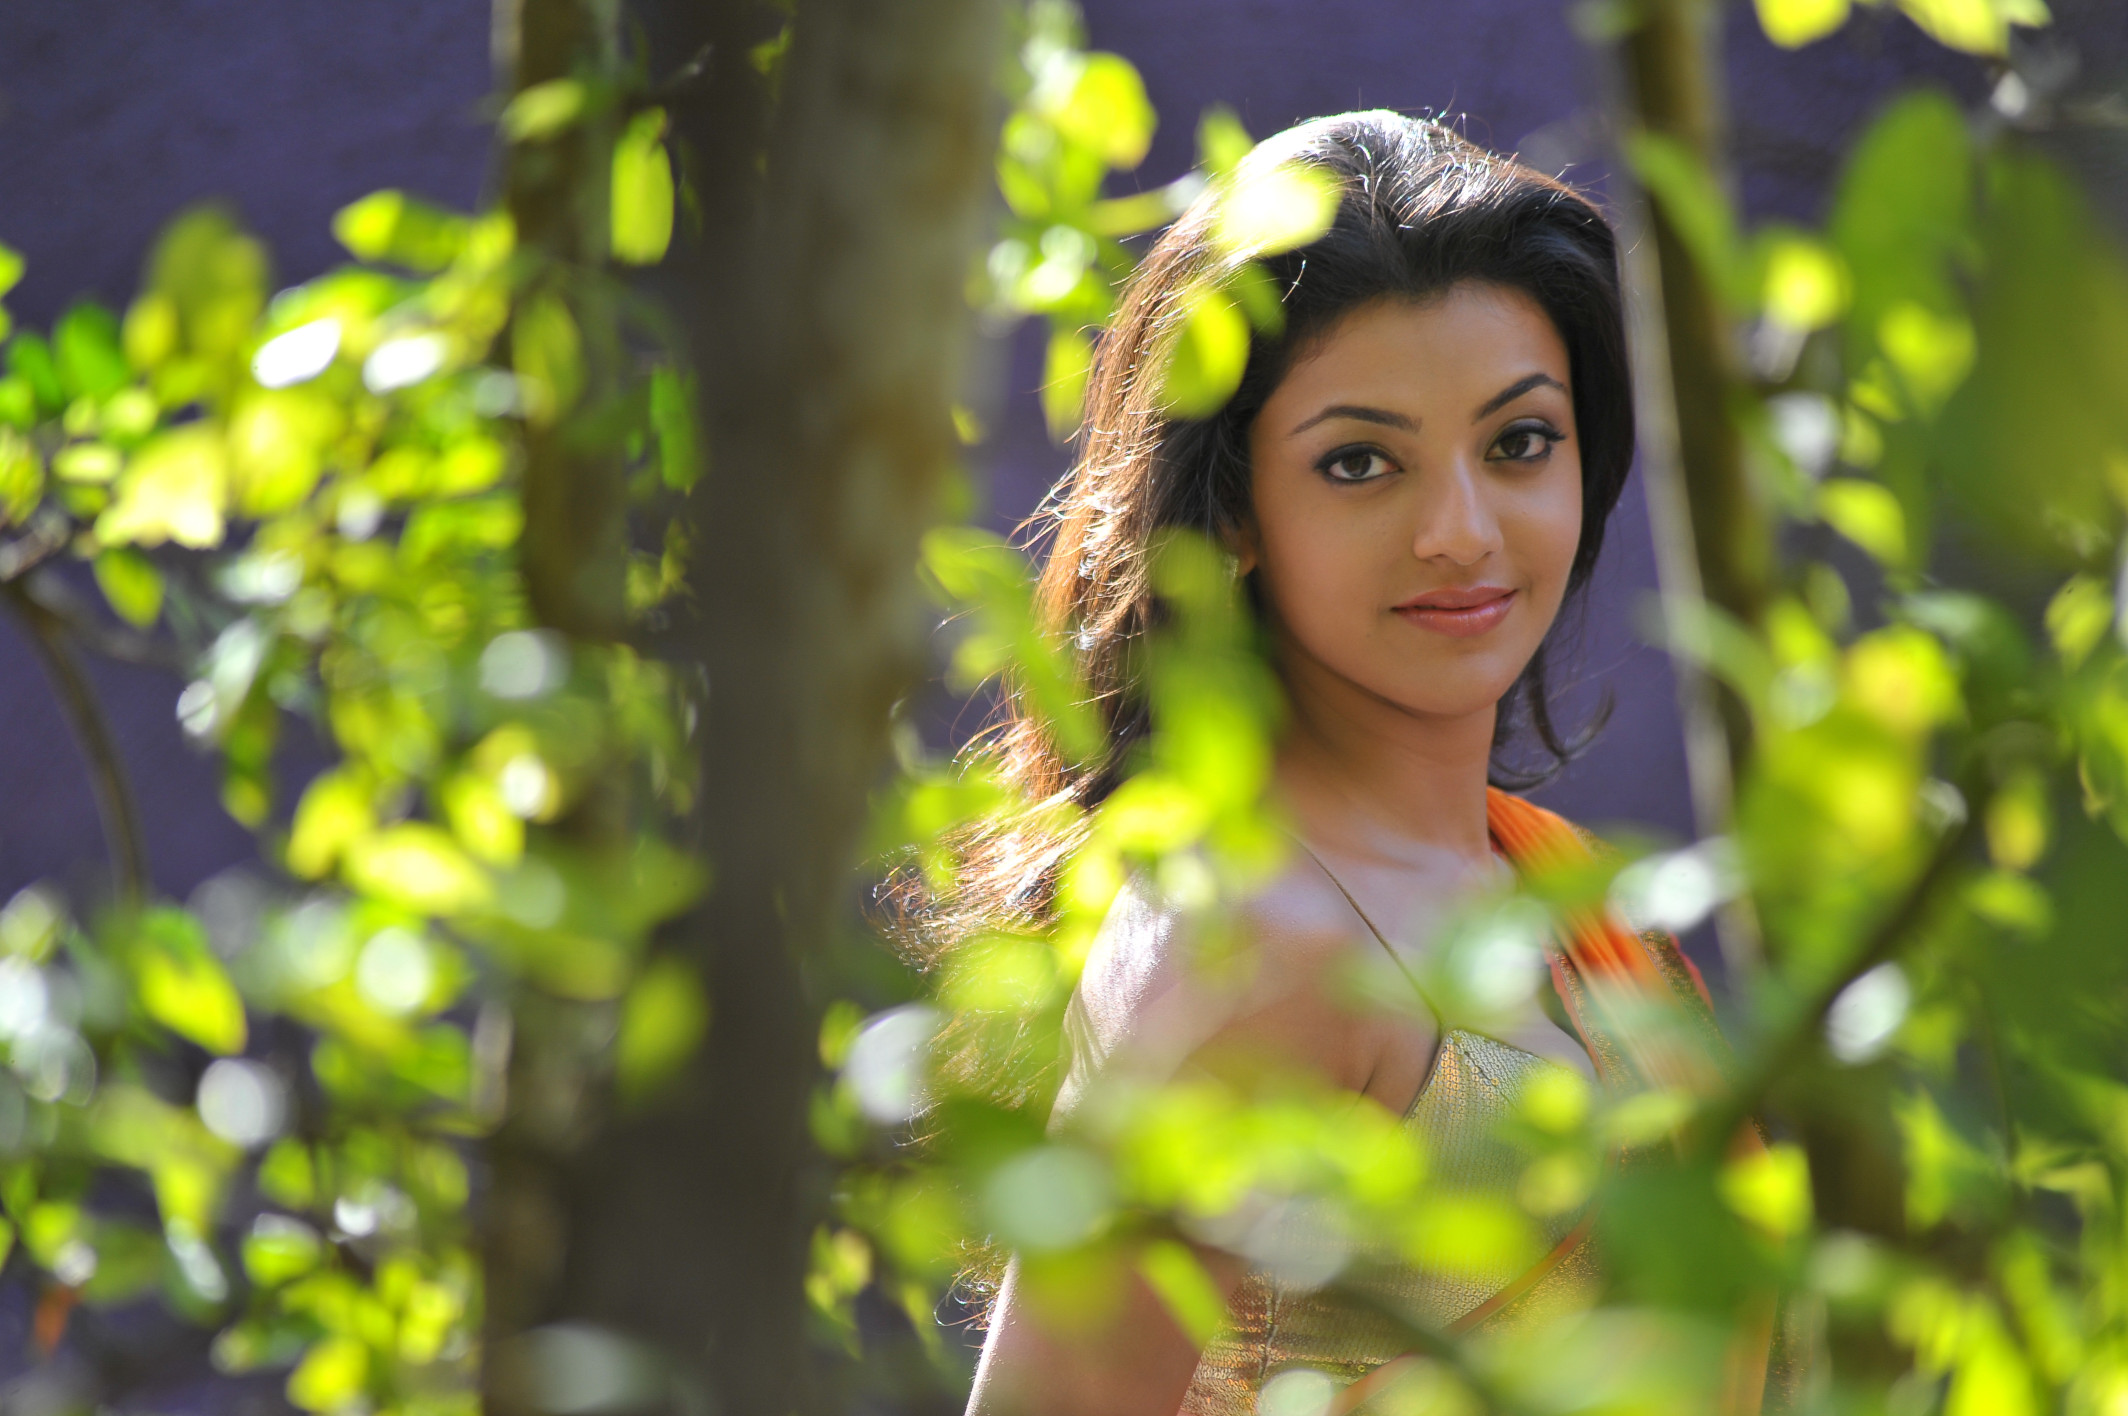 download kajal agarwal new photoshoot 1440x900 resolution, full hd